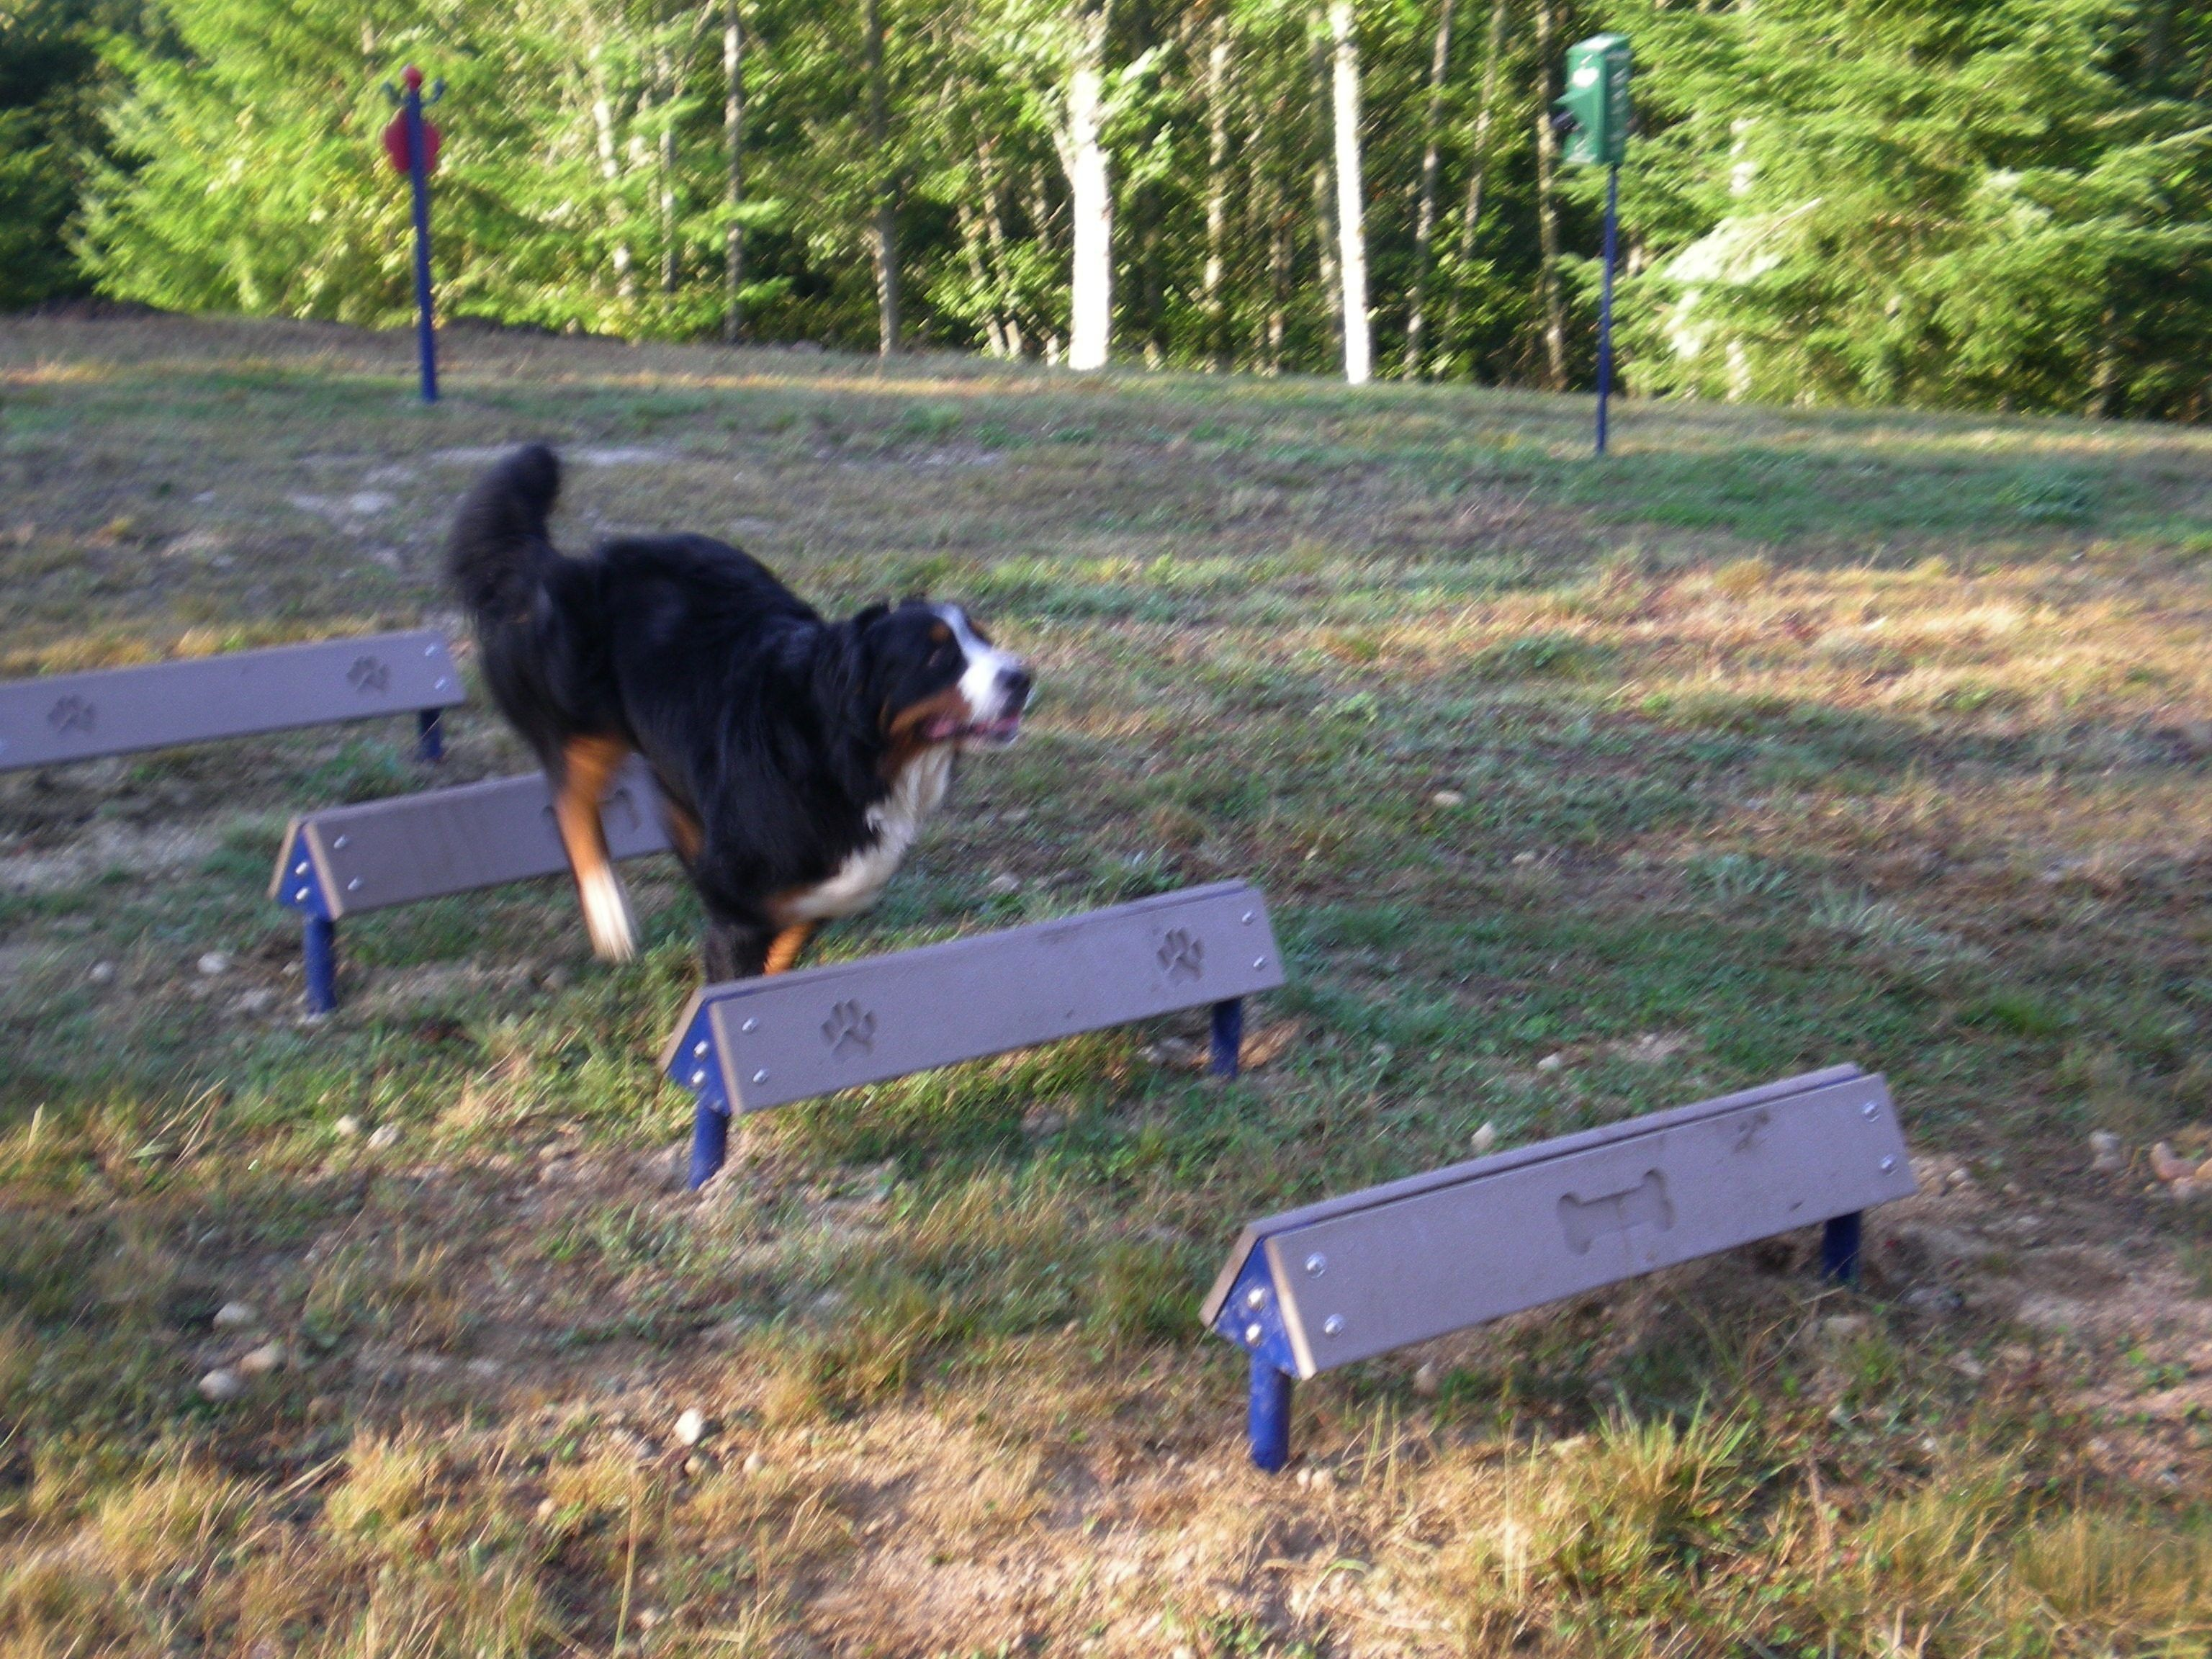 Hurdles  With engraved bone and paw graphics for aided depth perception these are a fun way to spruce up your dog park or play area resort in the gardensHound Hurdles  Wi...